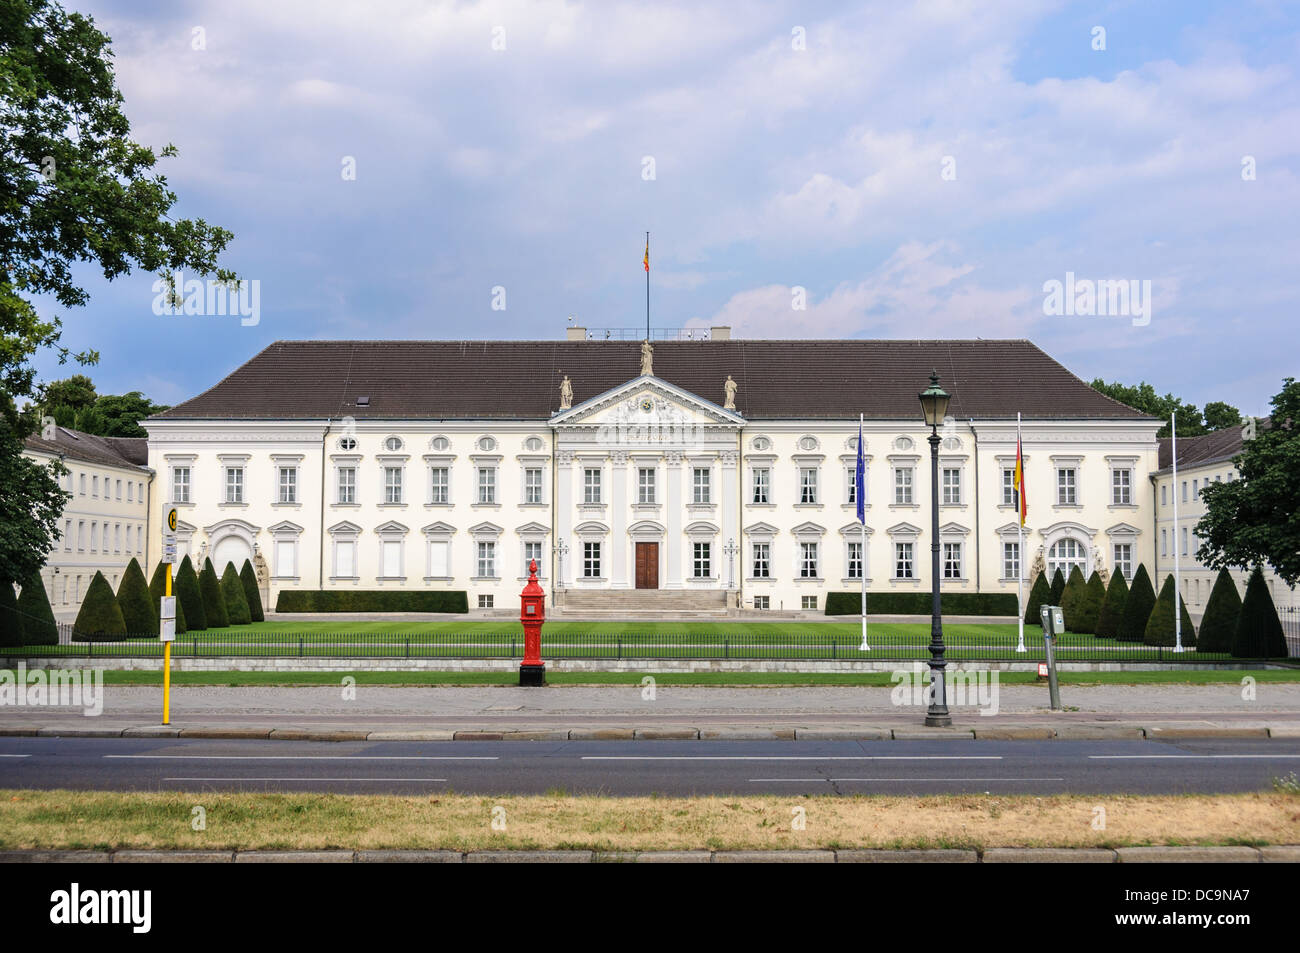 Bellevue Palace, Schloss Bellevue, official residence of the President of Germany, located in the Tiergarten district, Stock Photo